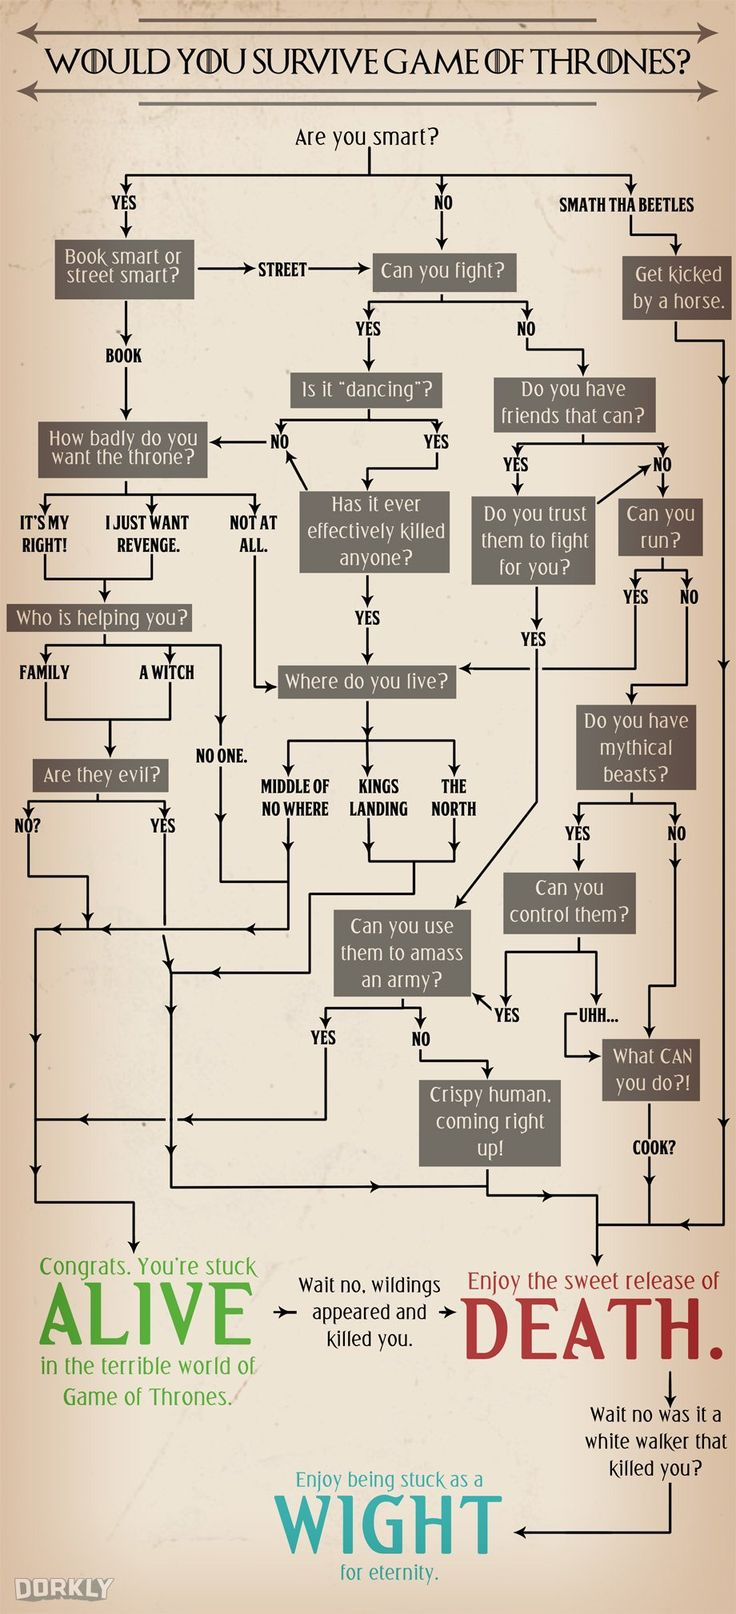 Would you survive a Game Of Thrones?